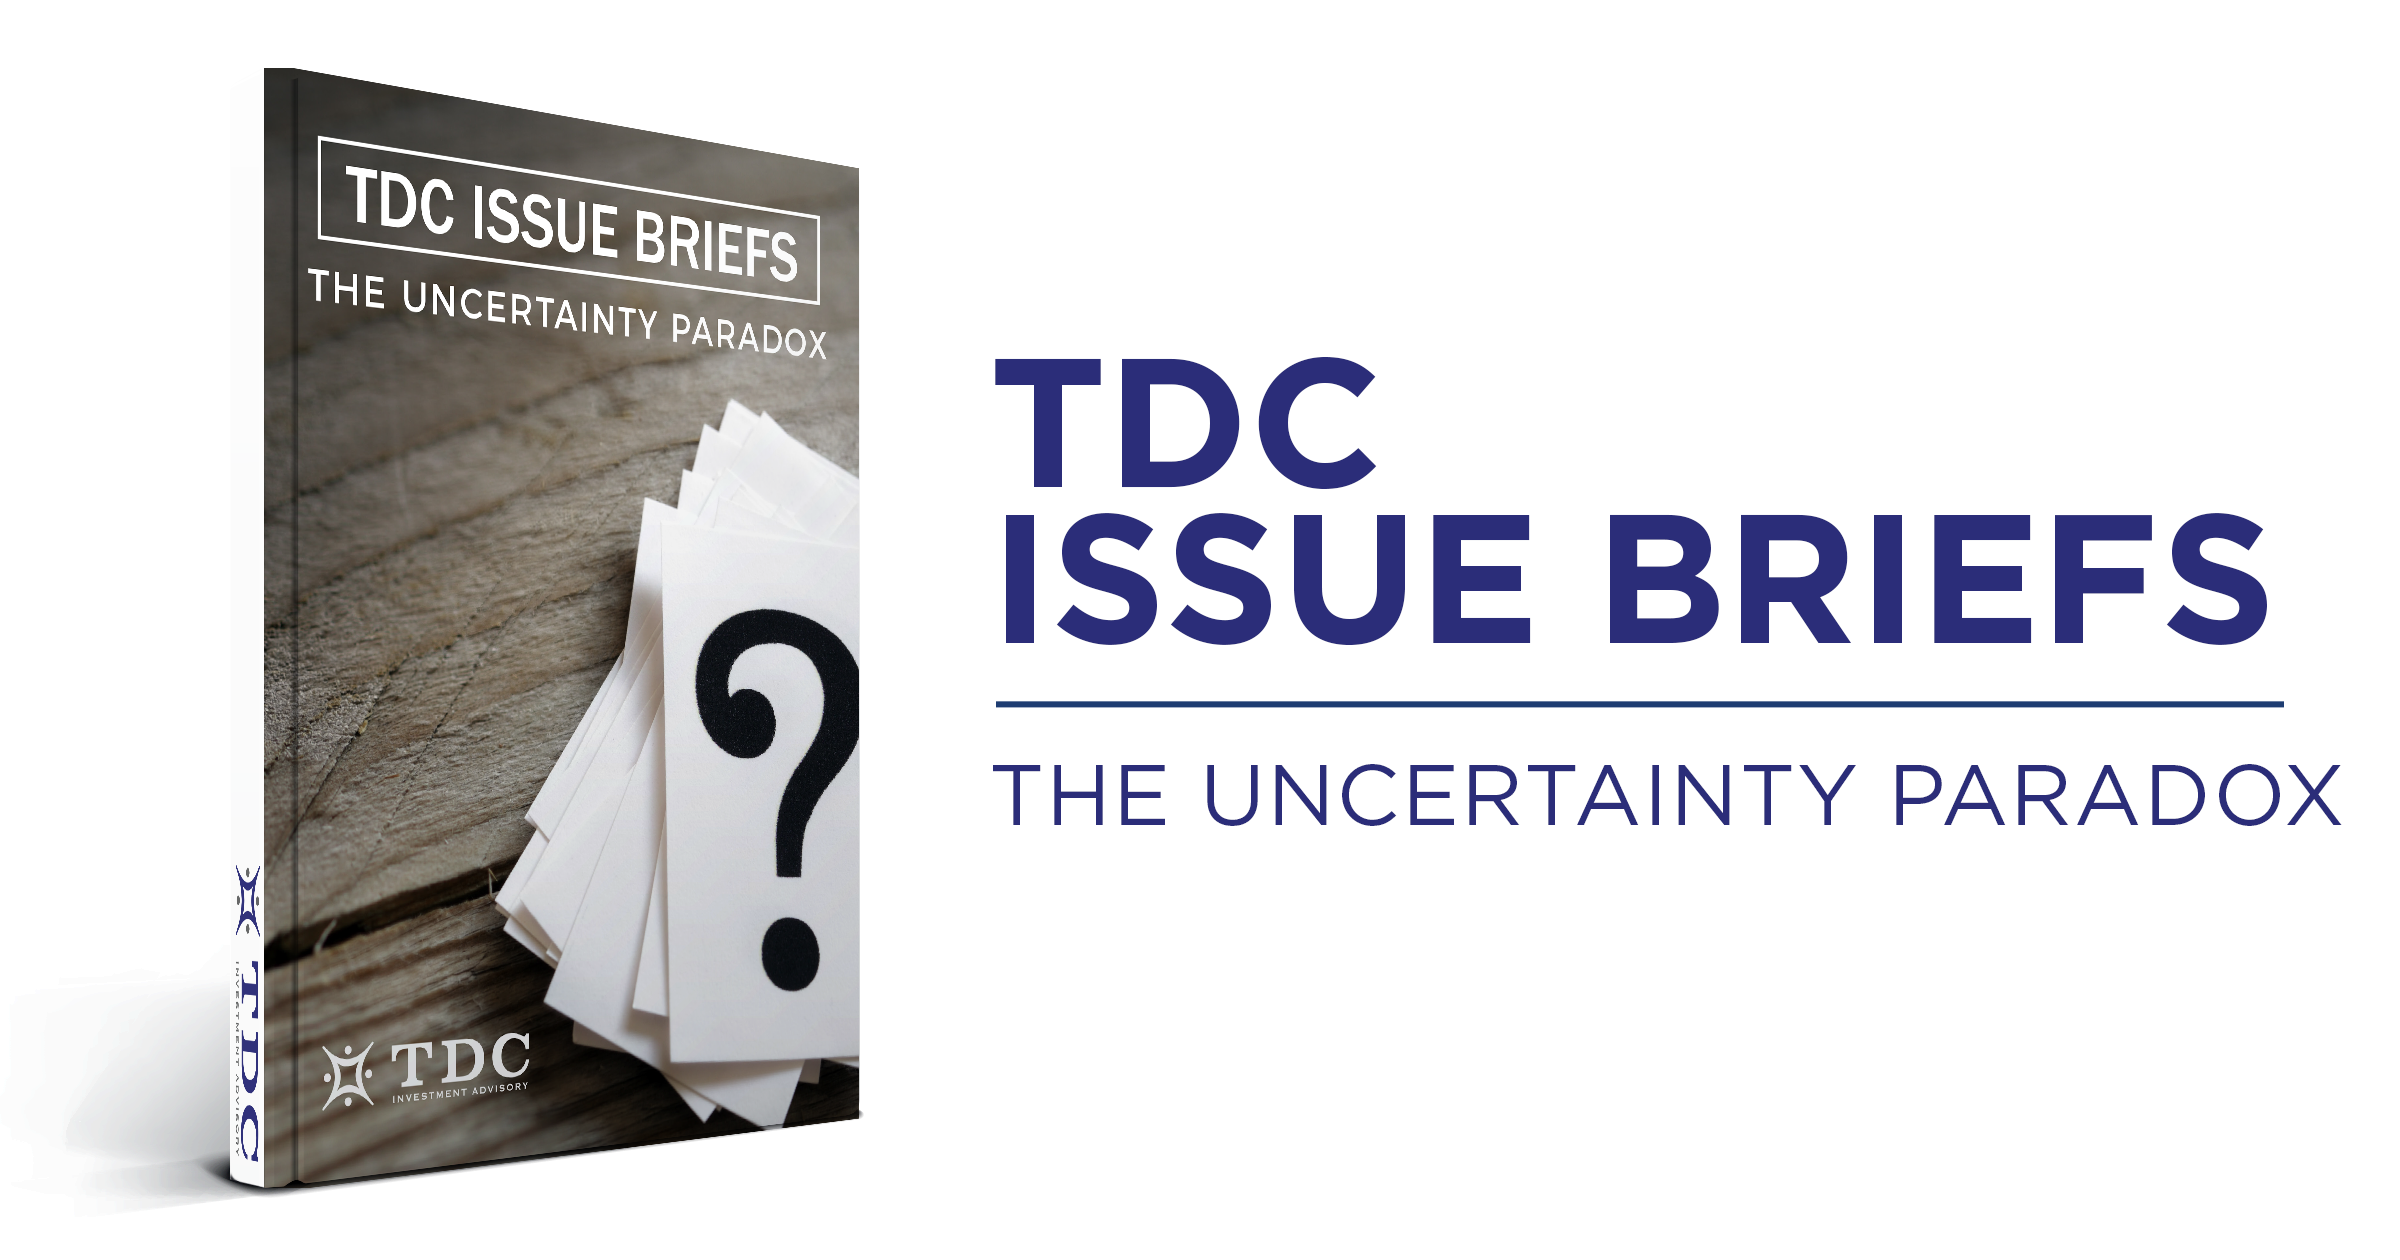 TDC Issue Briefs: The Uncertainty Paradox